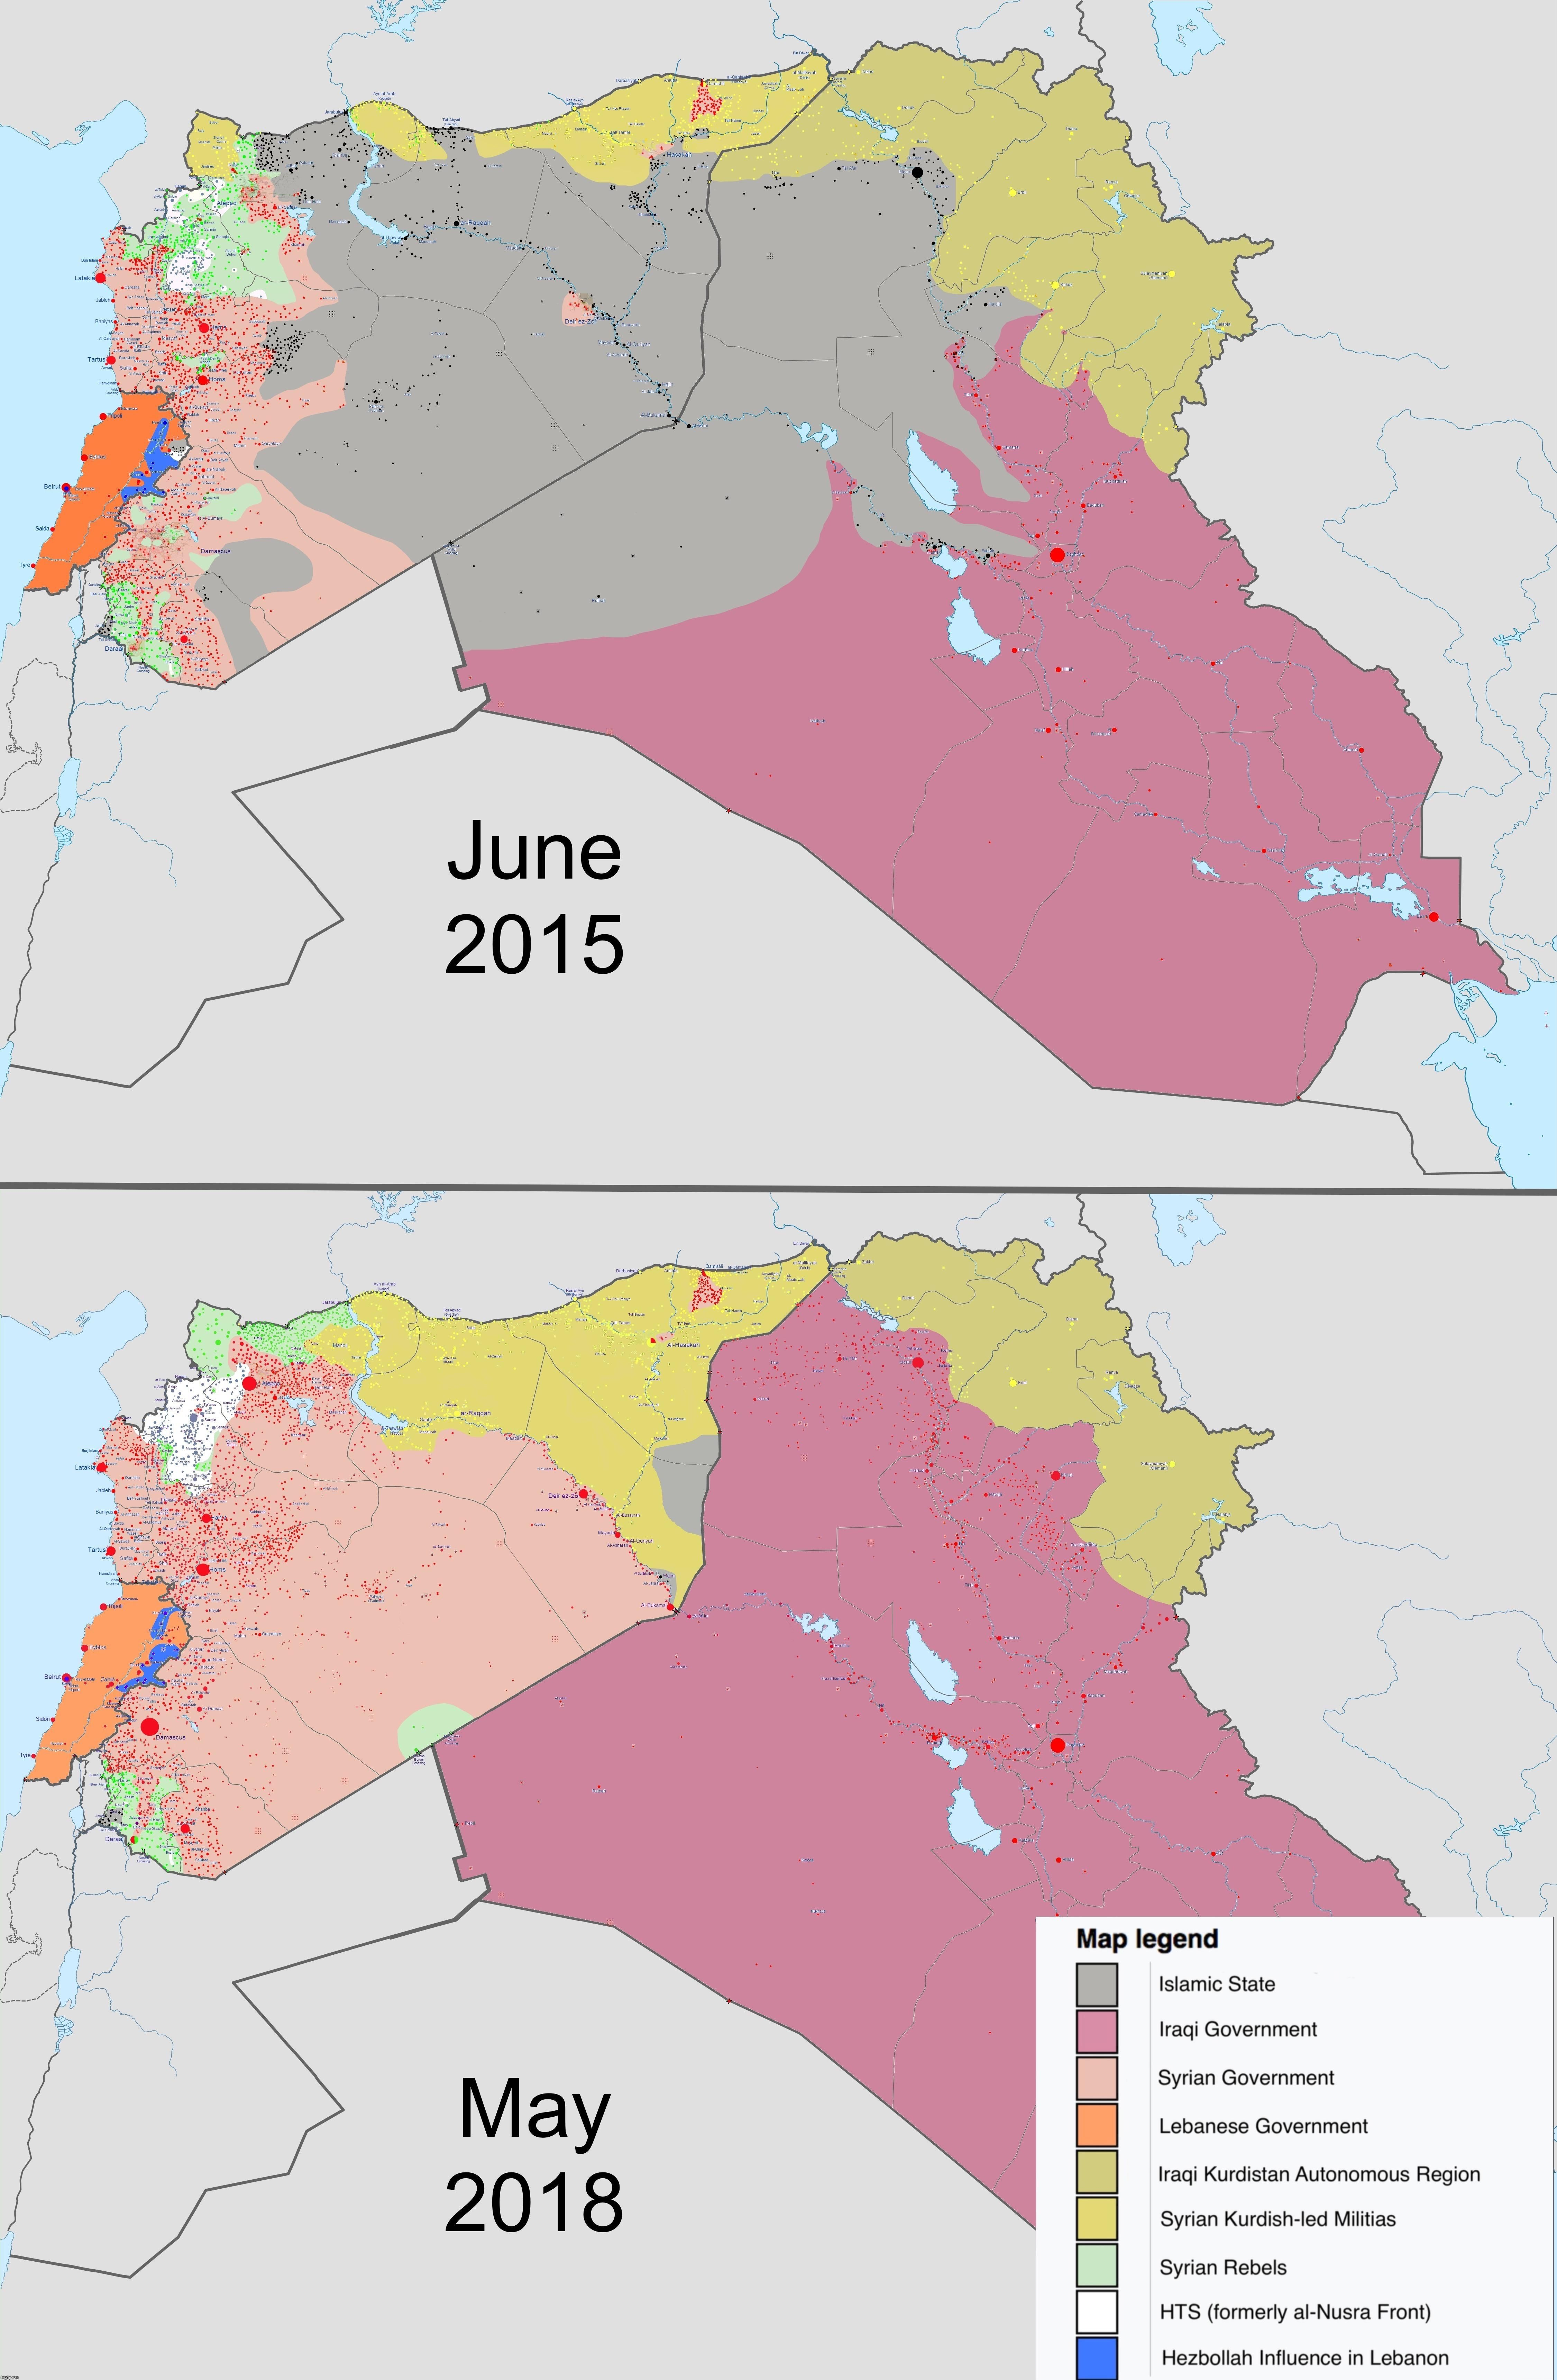 The death of Islamic State from their